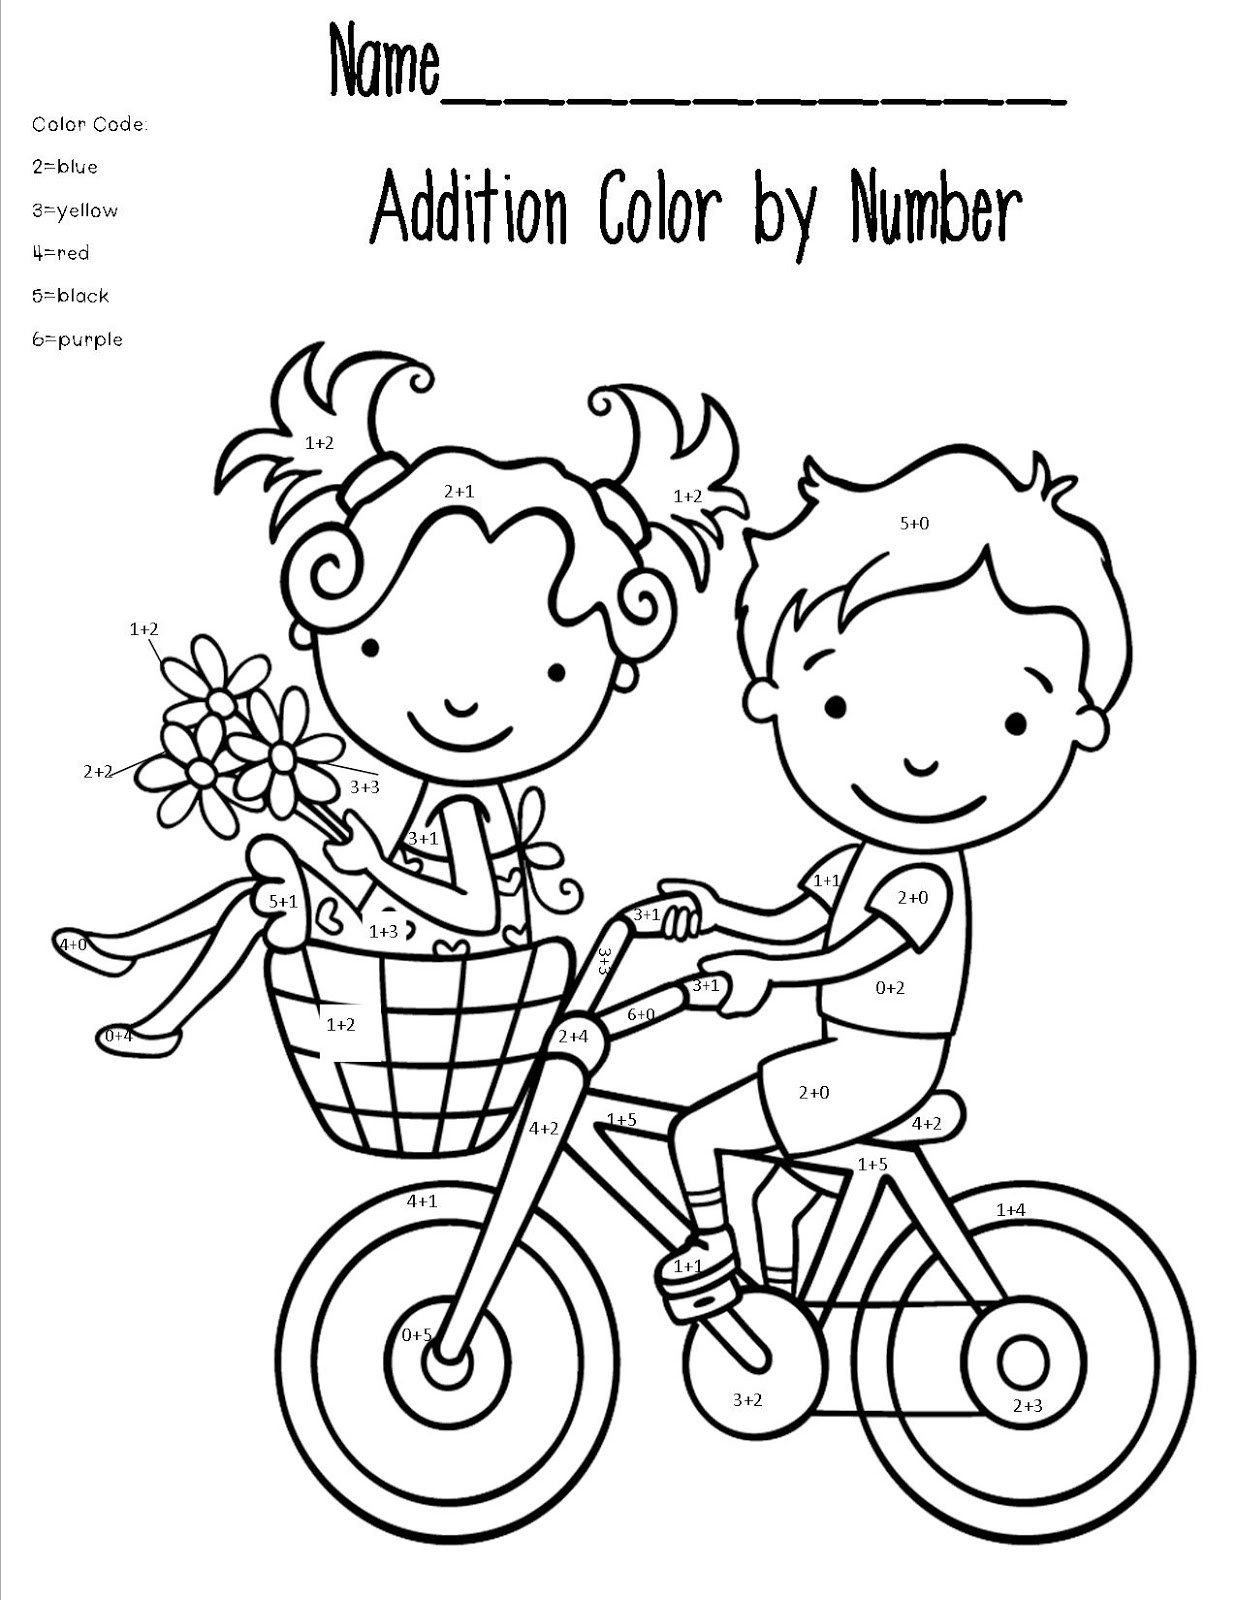 coloring math for 1st graders 1st grade math addition coloring worksheets coloring 1st math for graders coloring